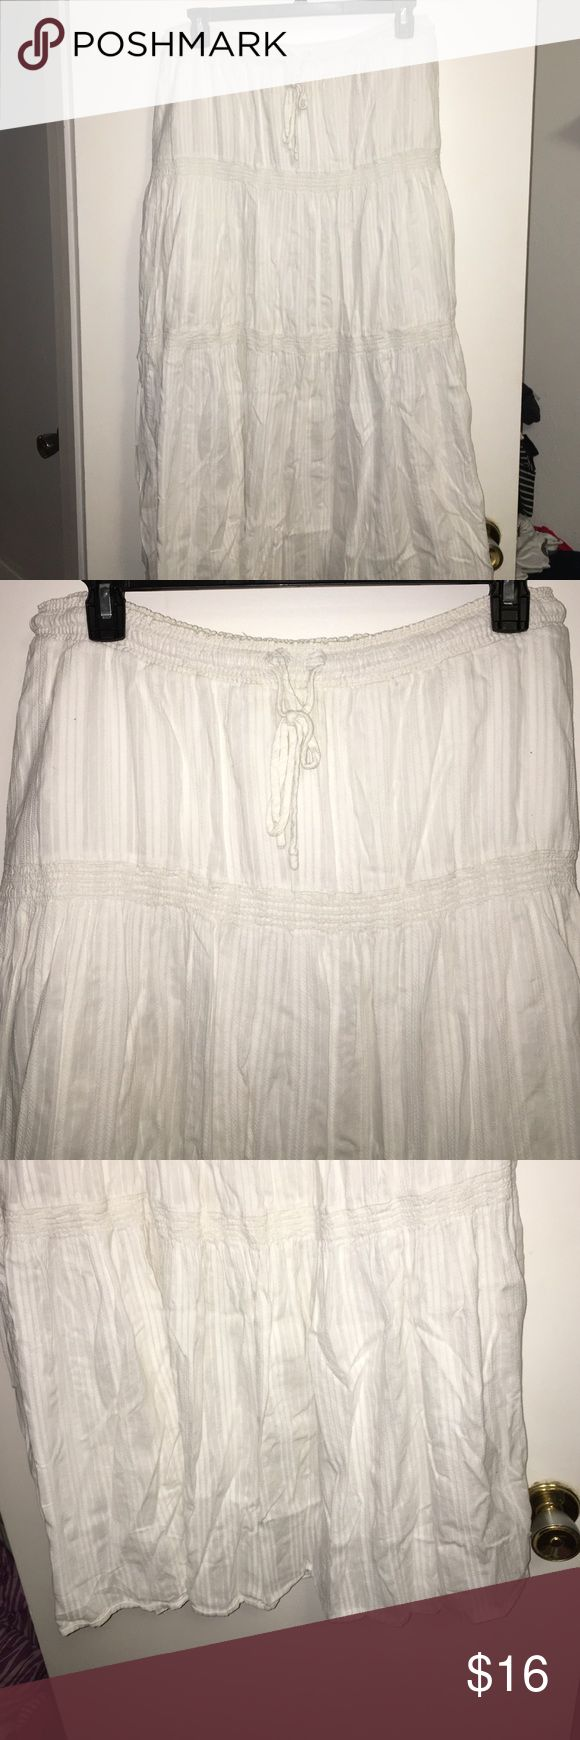 Long Skirt White, stretch waist with drawstring, lined, GAP Skirts A-Line or Full